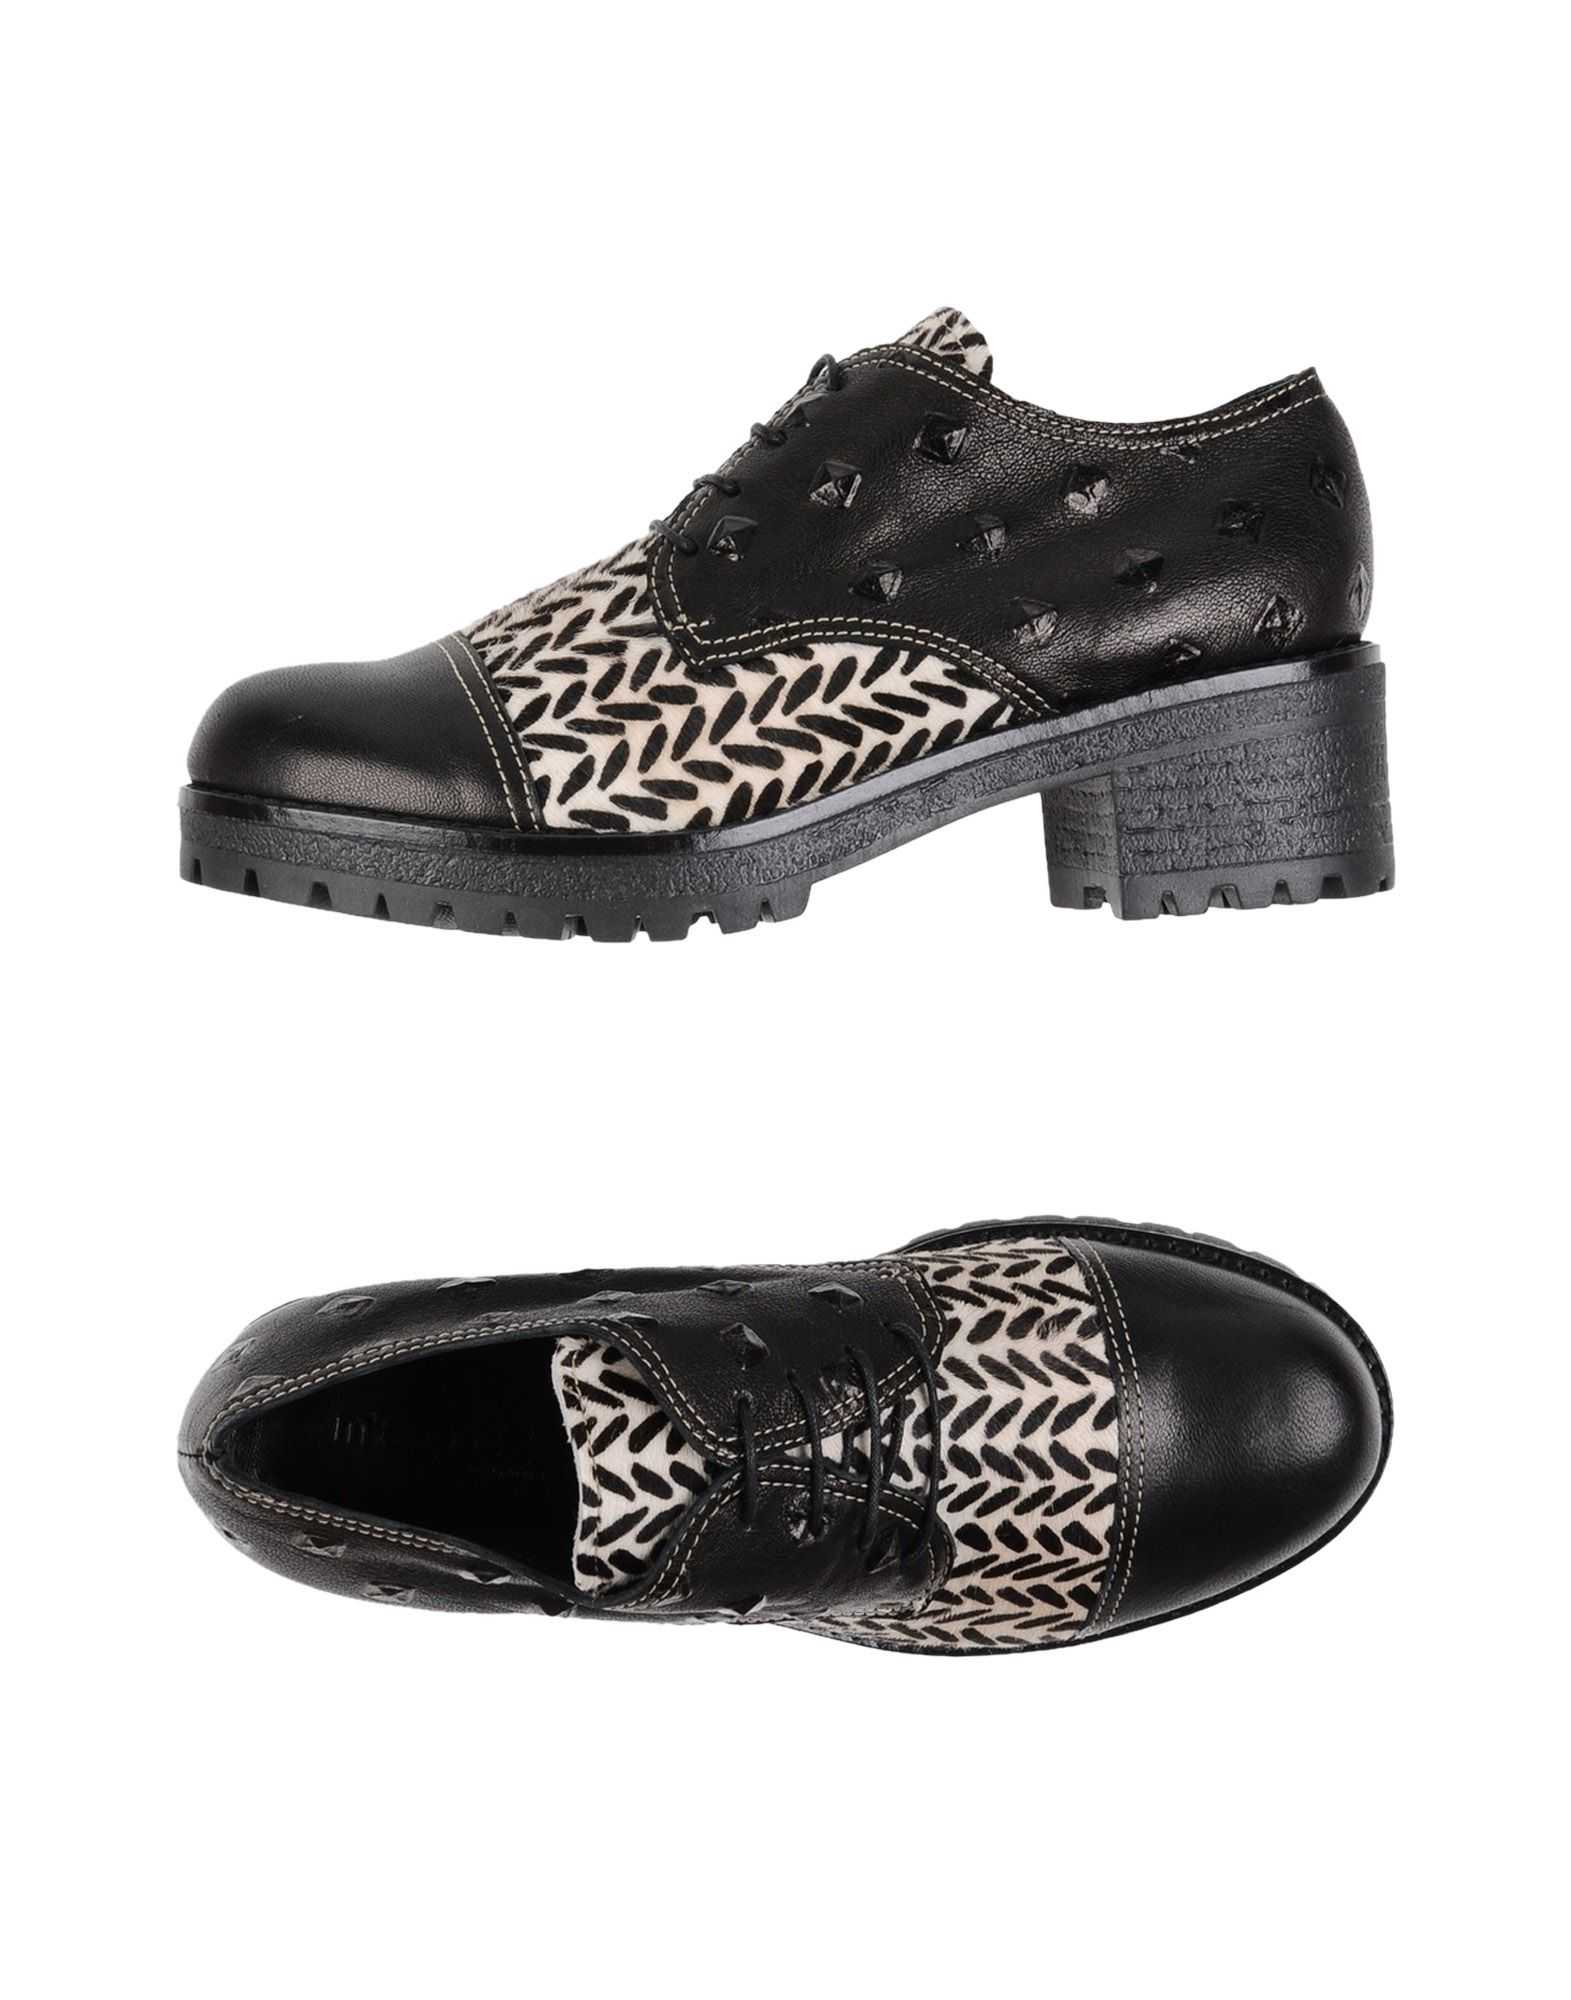 Chaussures À Lacets Mappazza Femme - Chaussures À Lacets Mappazza sur